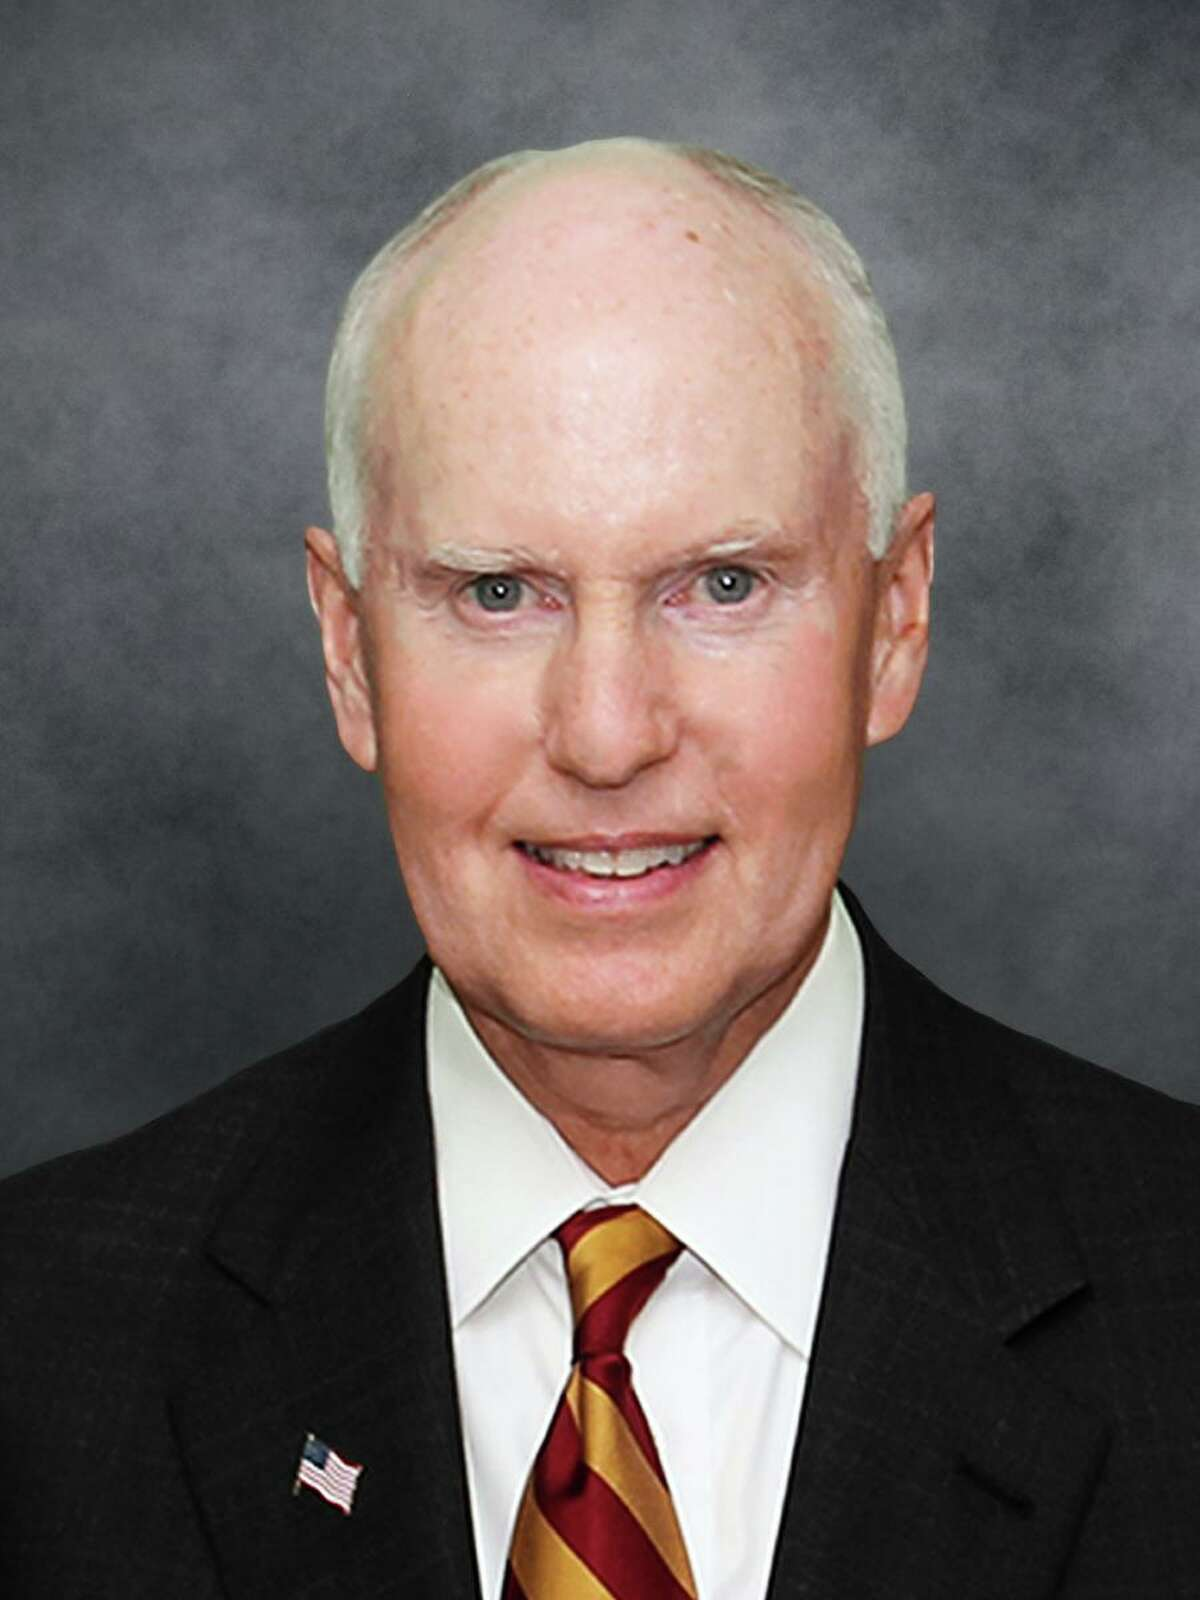 Former Klein ISD Superintendent Jim Cain is challenging incumbent candidate Ken Lloyd for the district nine seat on the Board of Trustees for Lone Star College in the upcoming Nov. 3, 2020 election.